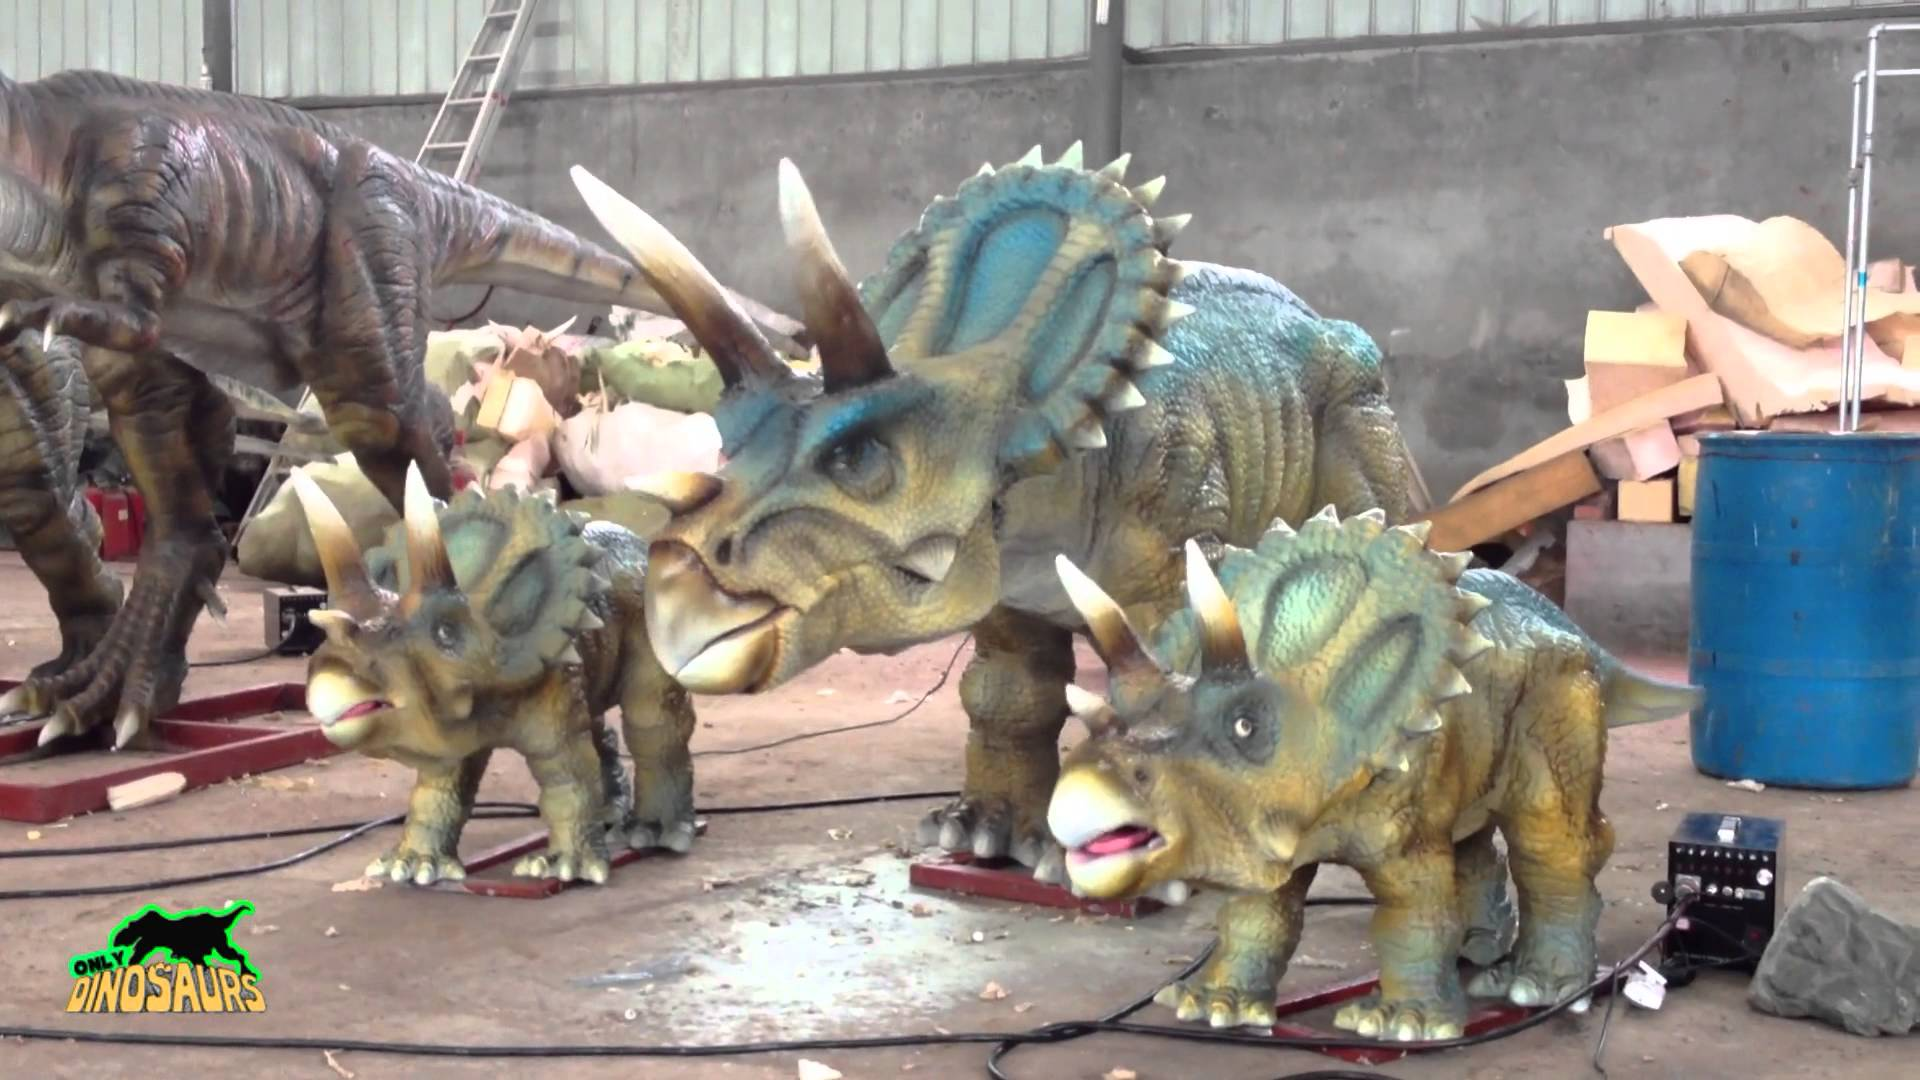 Life Size Dinosaur Statue with Sound and Movements - YouTube